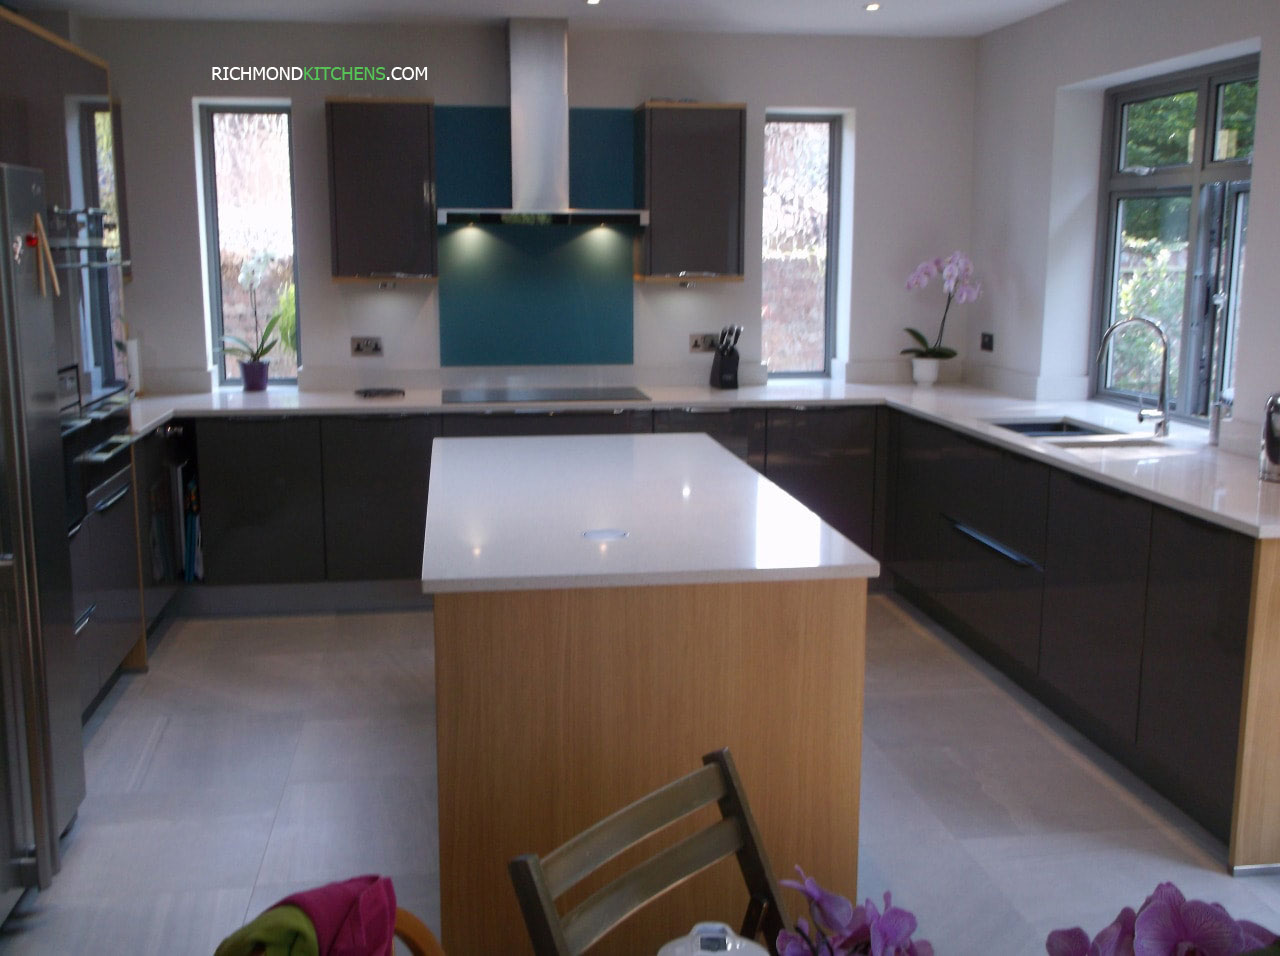 Kitchen Showroom Surrey, Kitchen Showroom Walton, Kitchen Showroom Walton Upon Thames